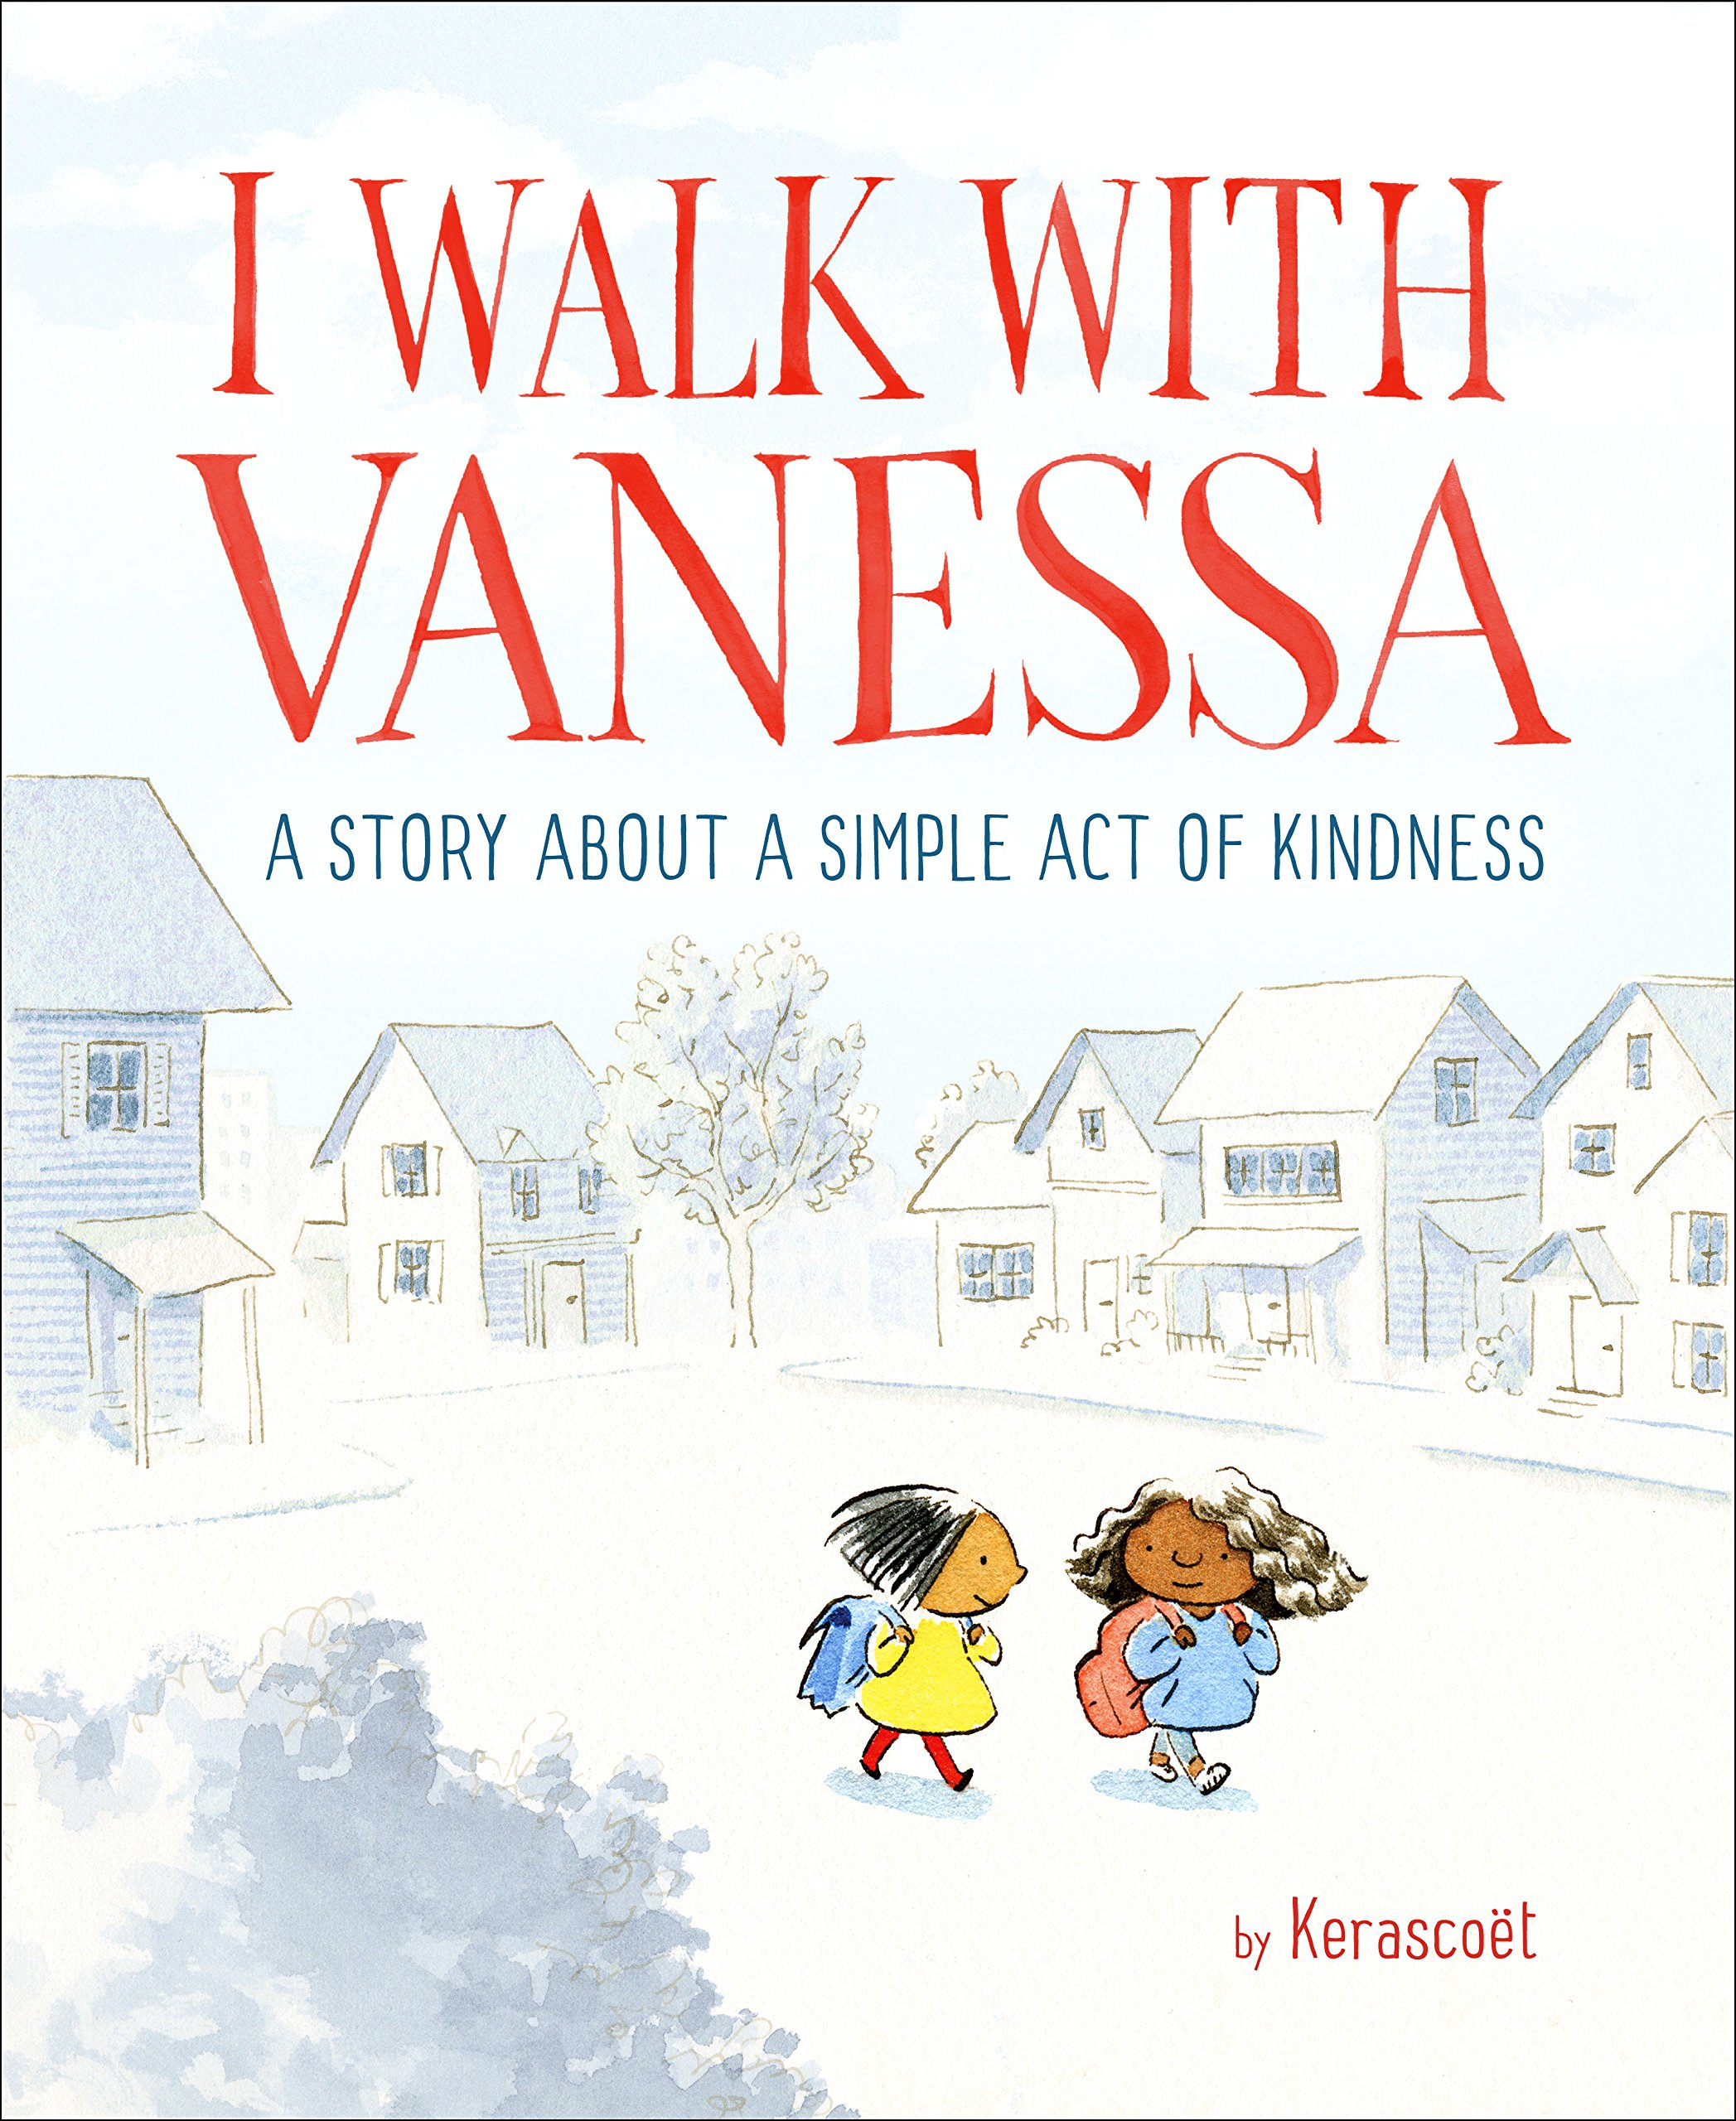 Picture Books that teach empathy to kids  - i walk with vanessa.jpg